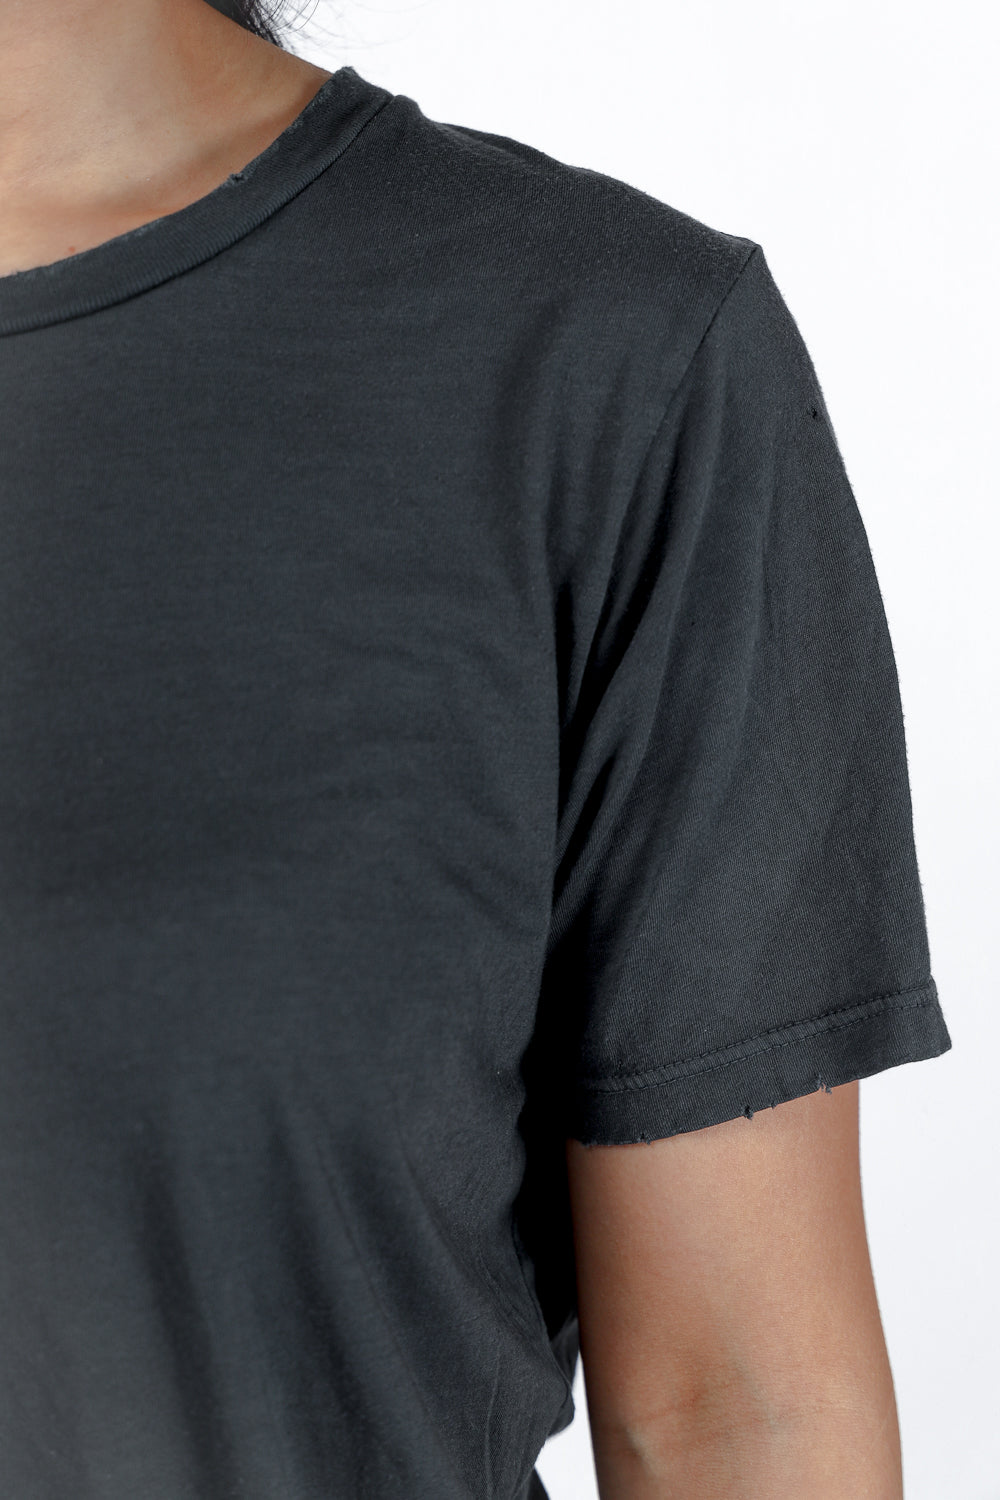 Distressed Classic Tee in Faded Black PREORDER